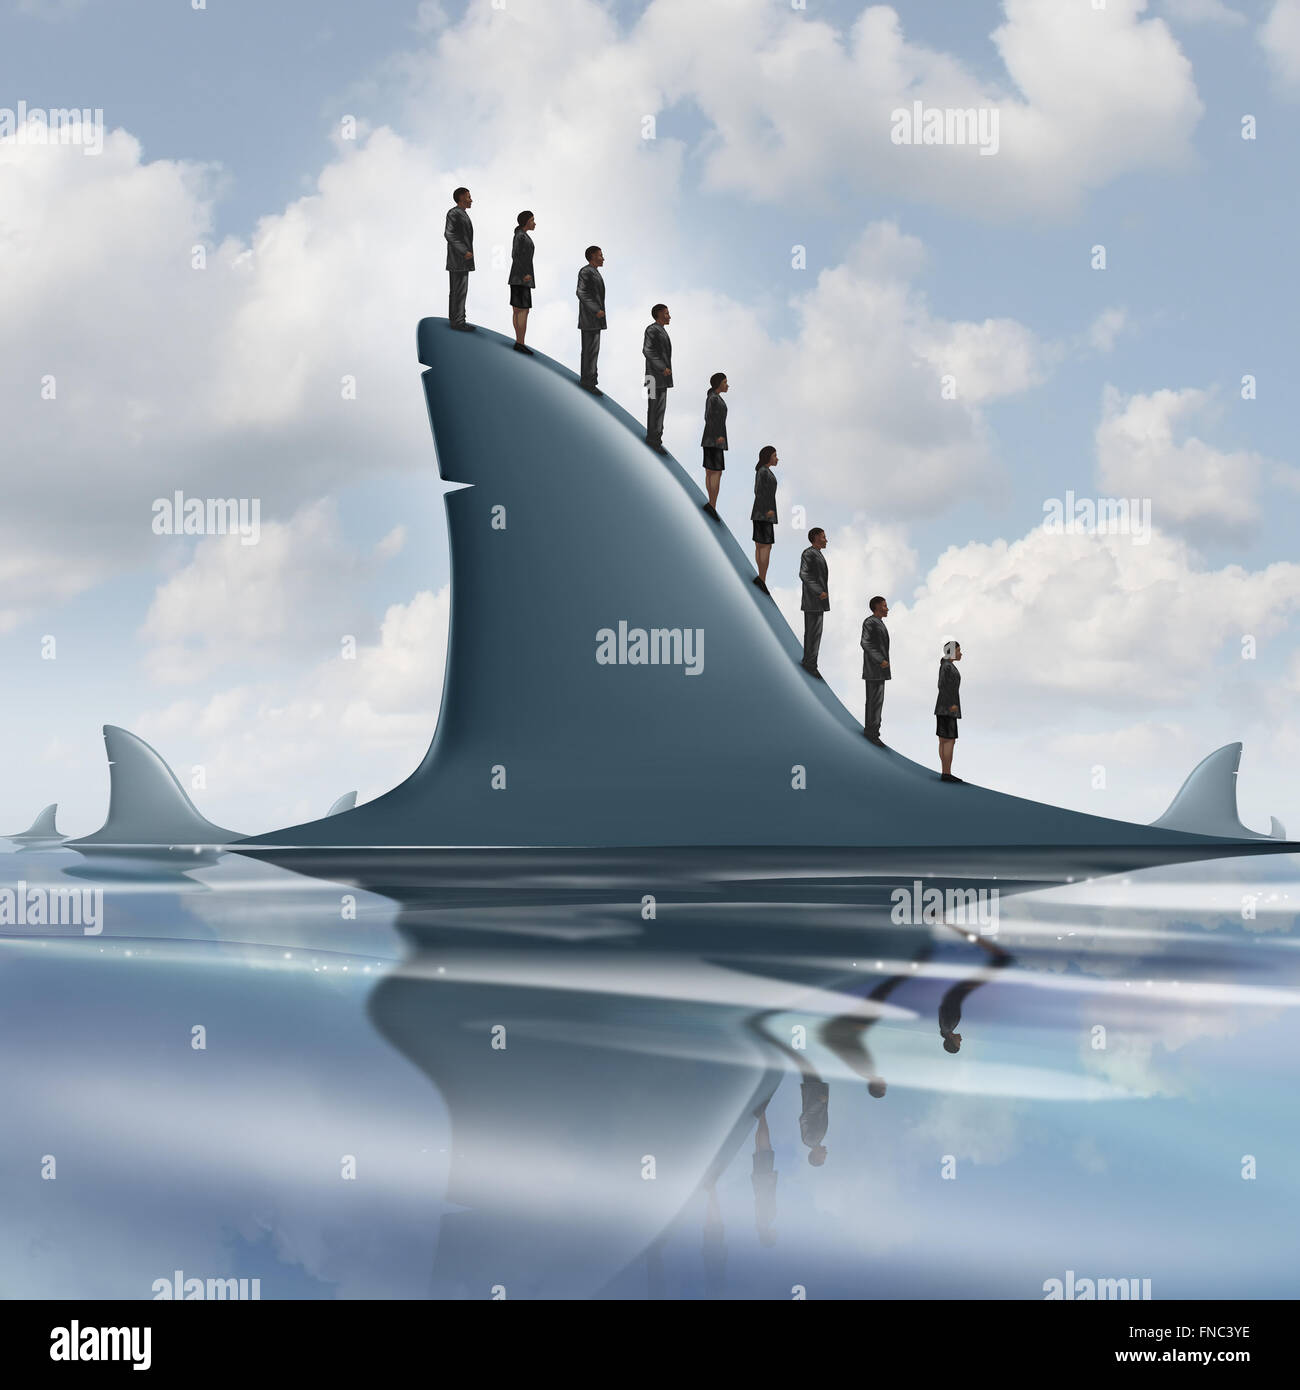 Concept of risk business metaphor as a group of courageous or unaware businesspeople standing on the dorsal fin - Stock Image